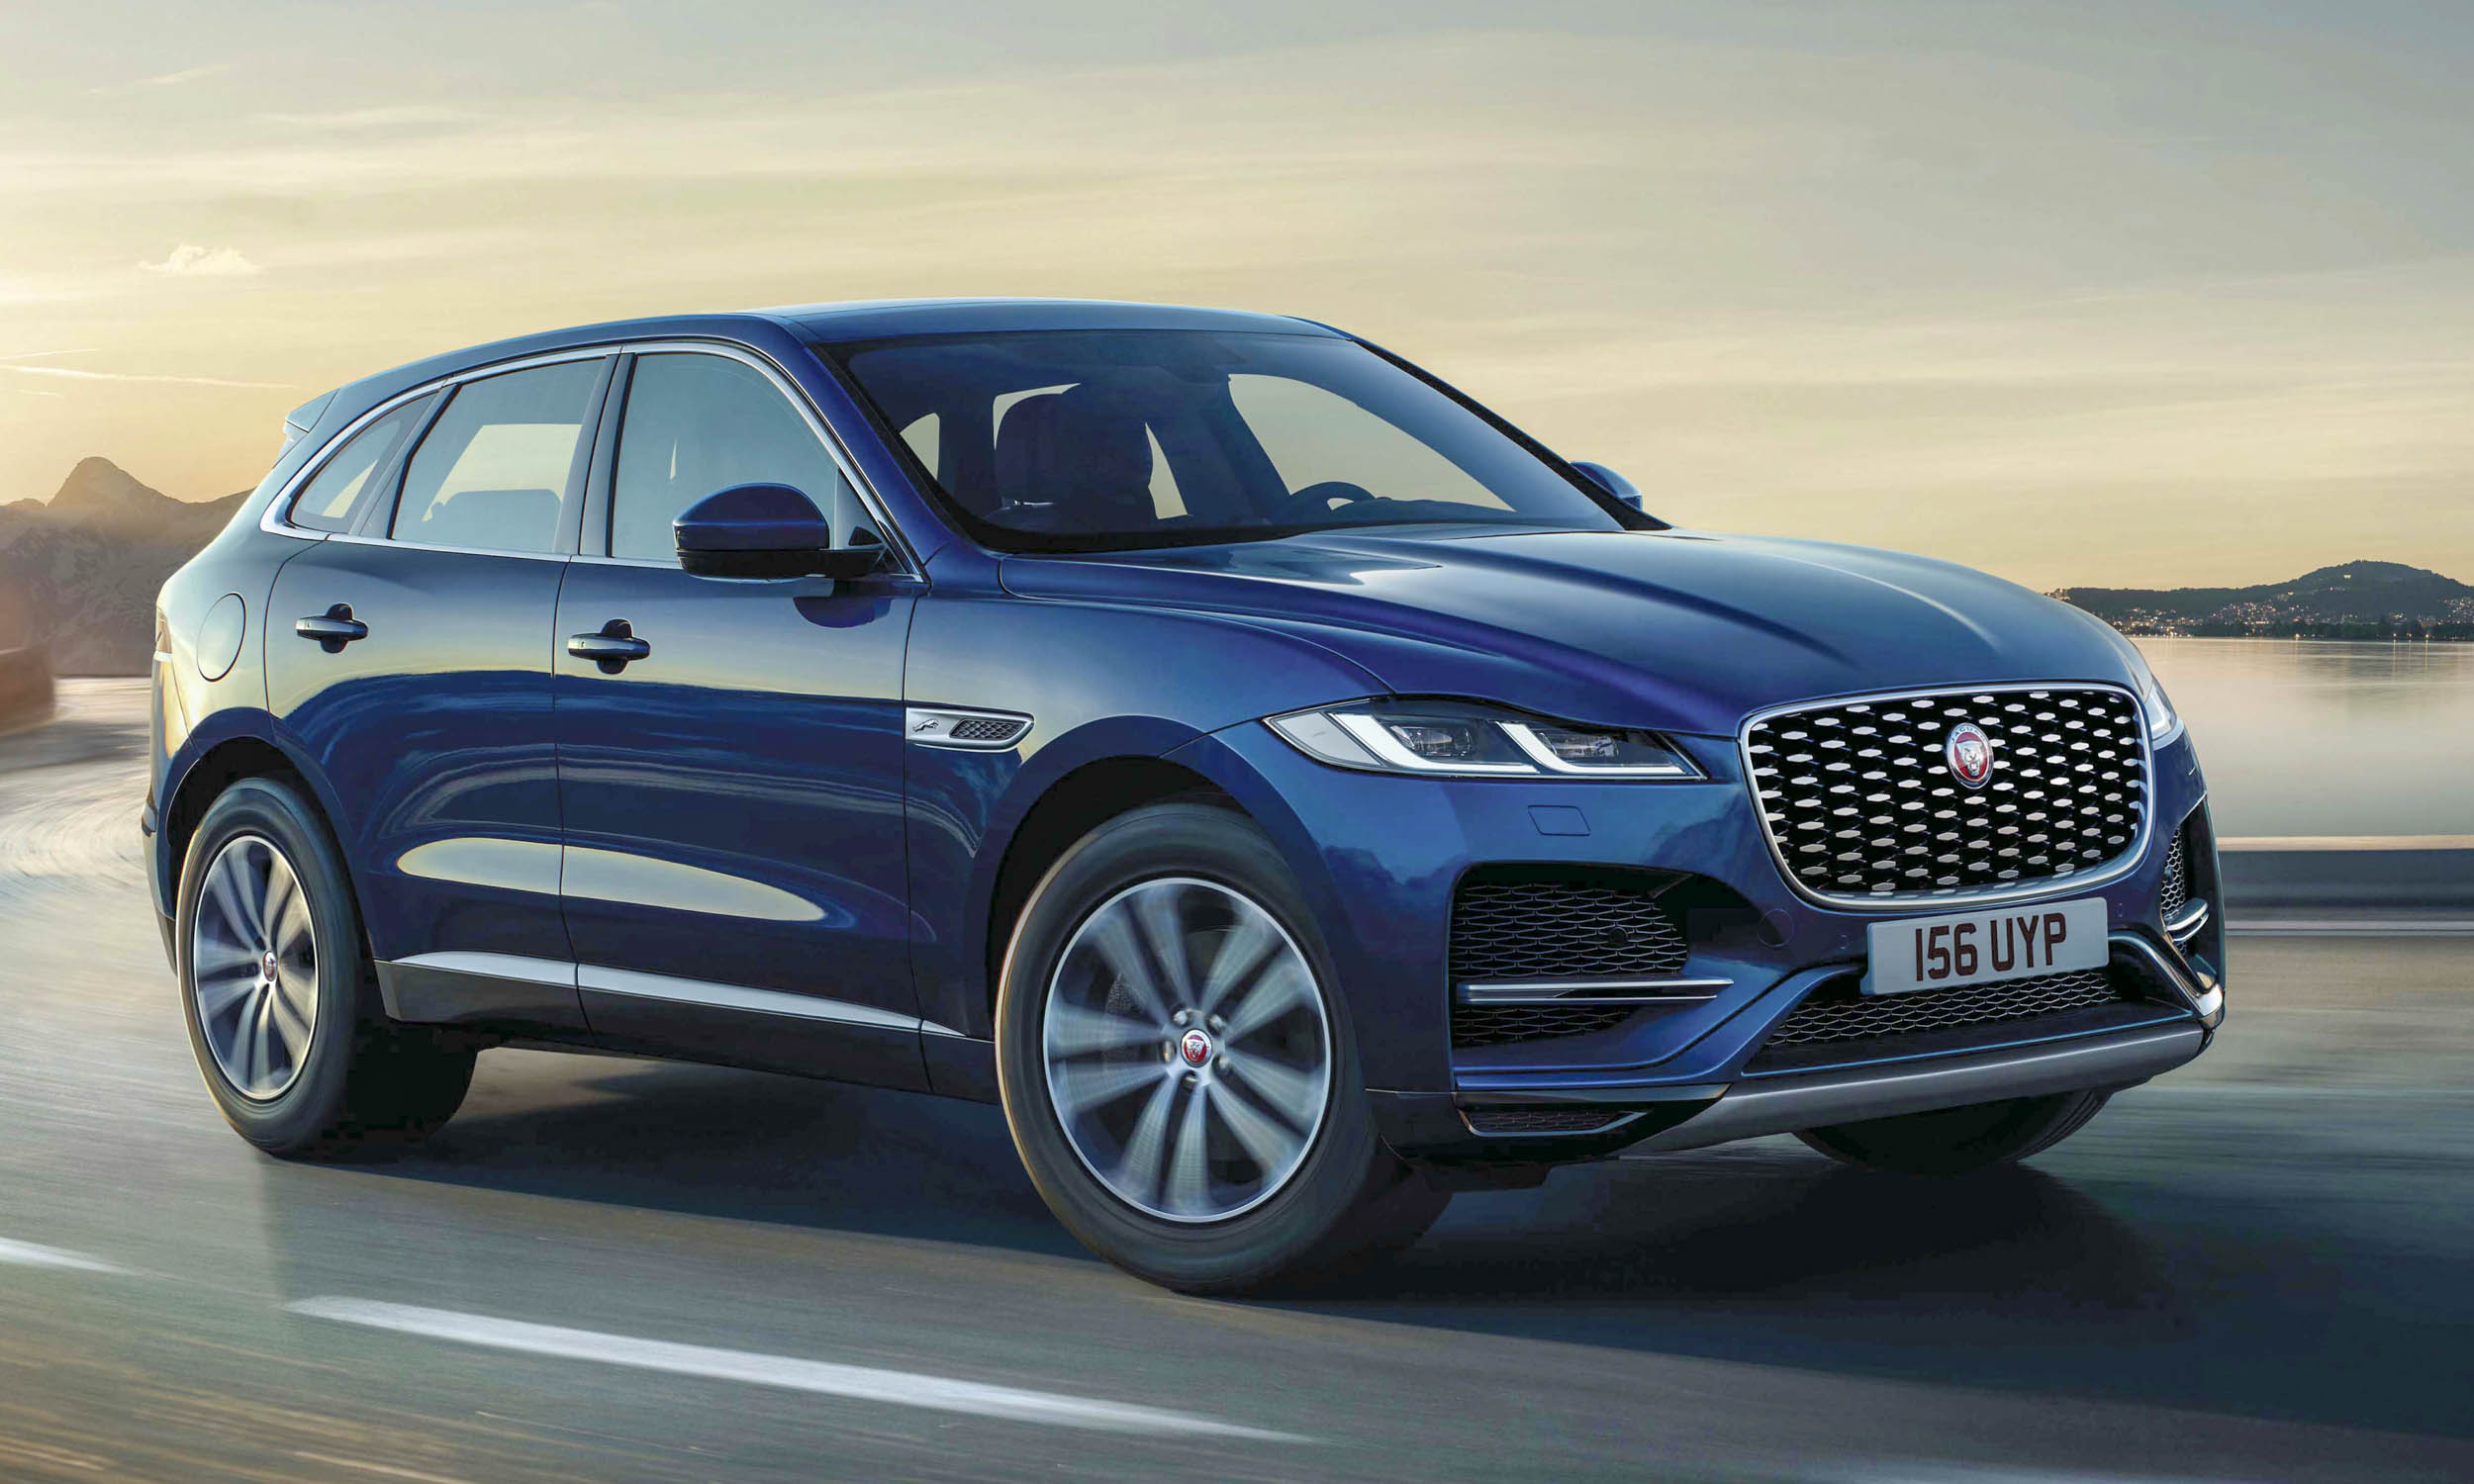 2021 Jaguar F Pace First Look Our Auto Expert